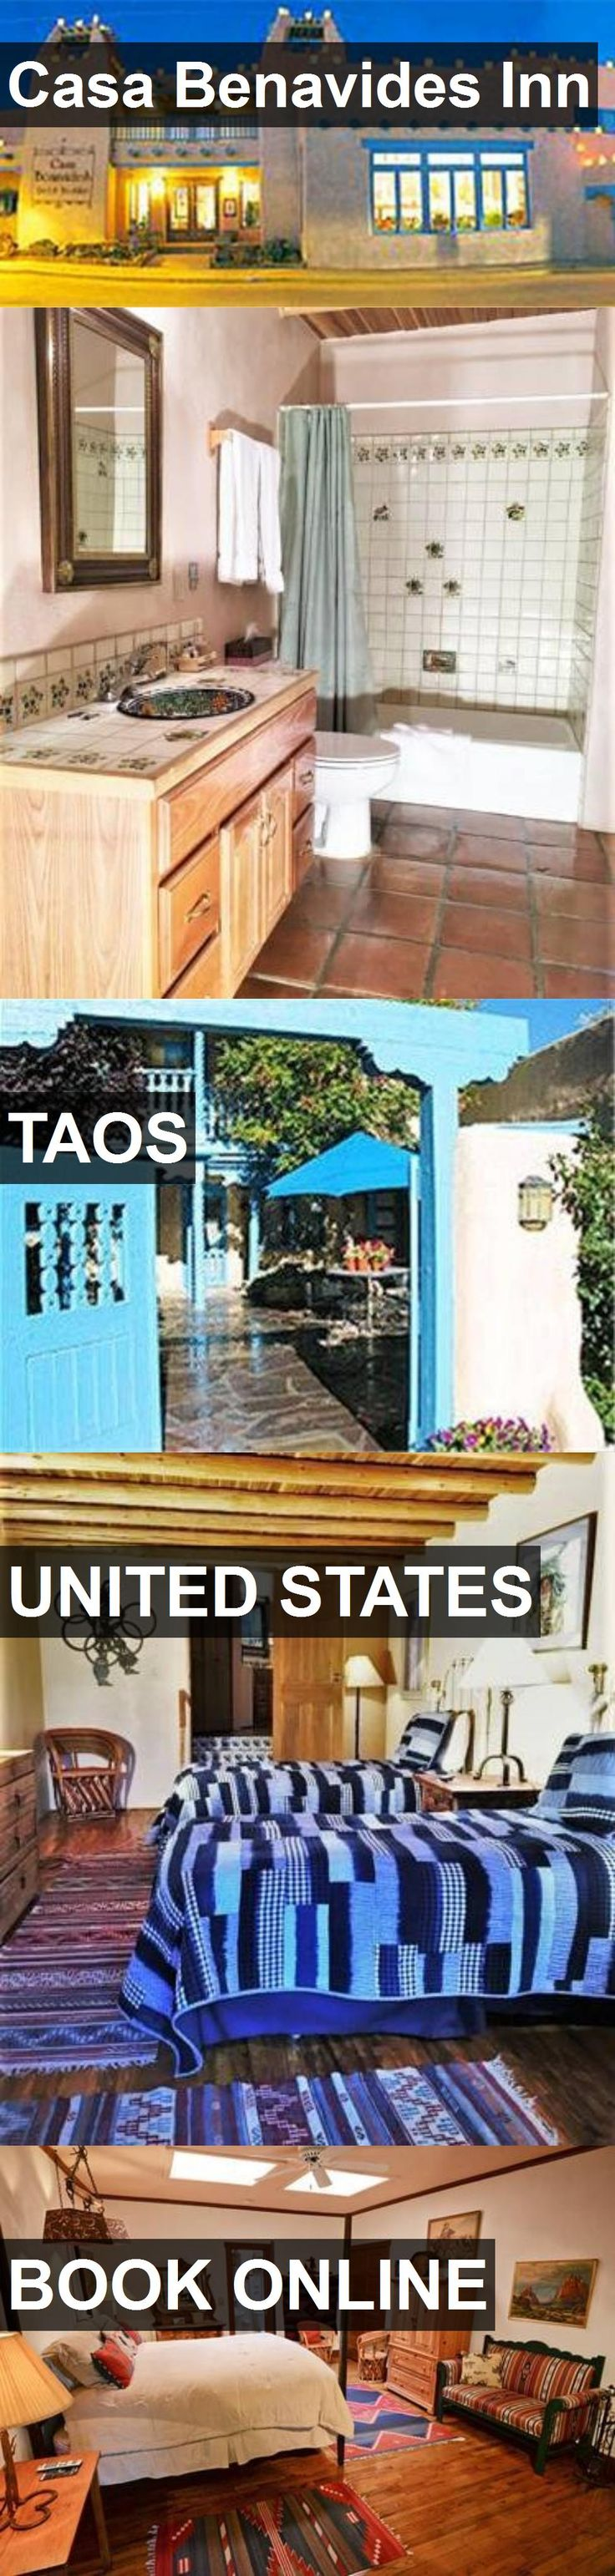 Hotel Casa Benavides Inn in Taos, United States. For more information, photos, reviews and best prices please follow the link. #UnitedStates #Taos #CasaBenavidesInn #hotel #travel #vacation